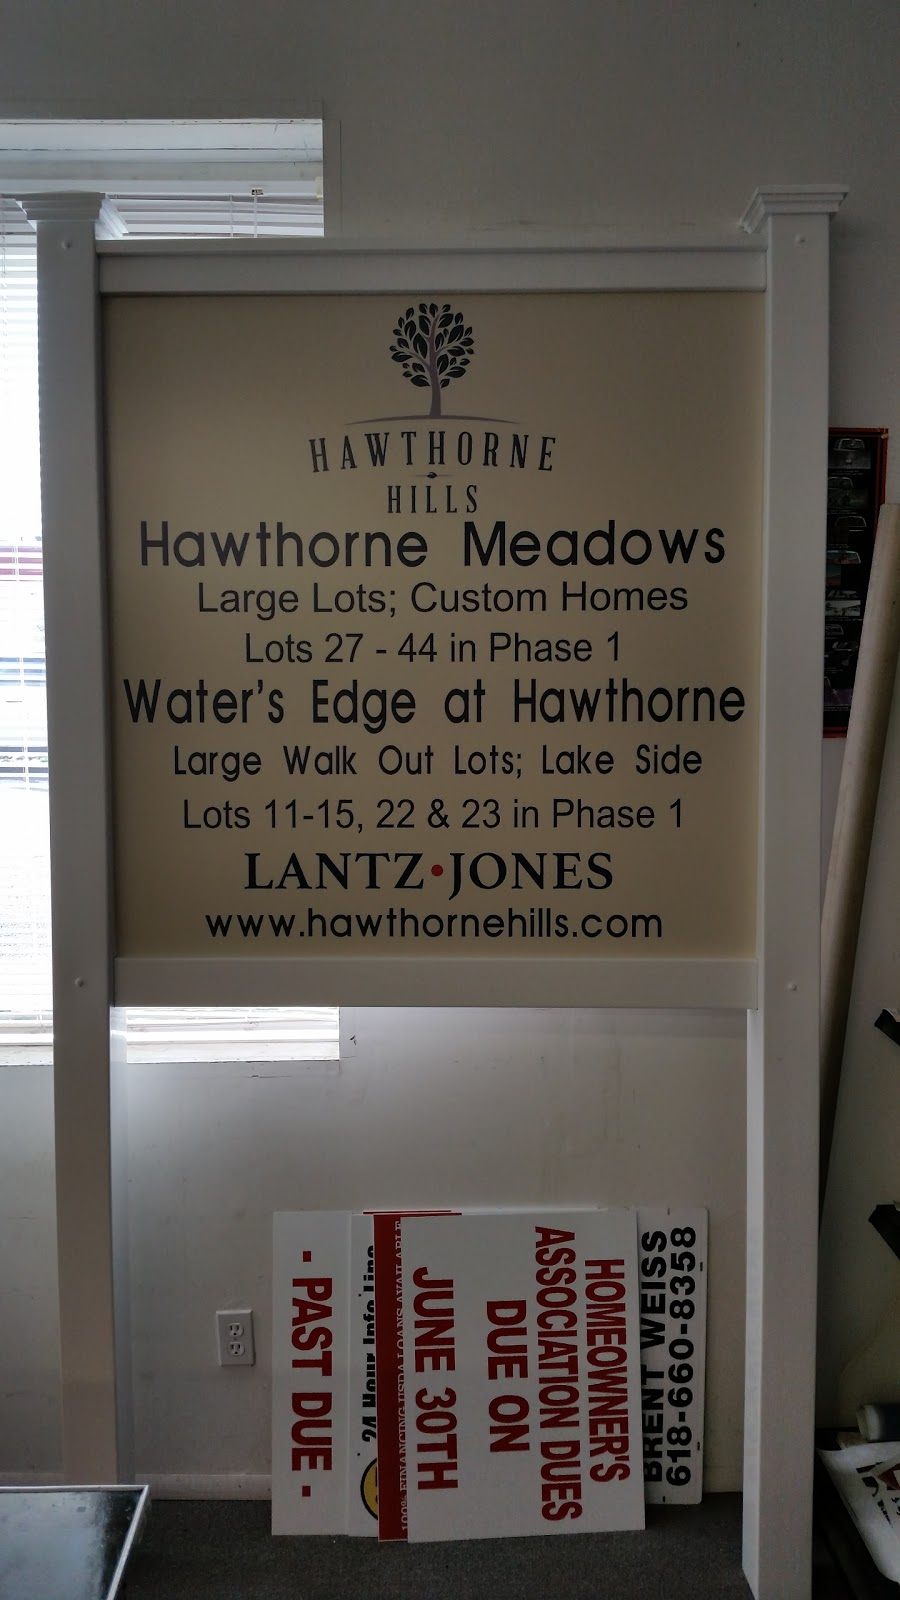 The Sign Shop Inc - store  | Photo 3 of 3 | Address: 225 2nd Ave, Edwardsville, IL 62025, USA | Phone: (618) 656-0606